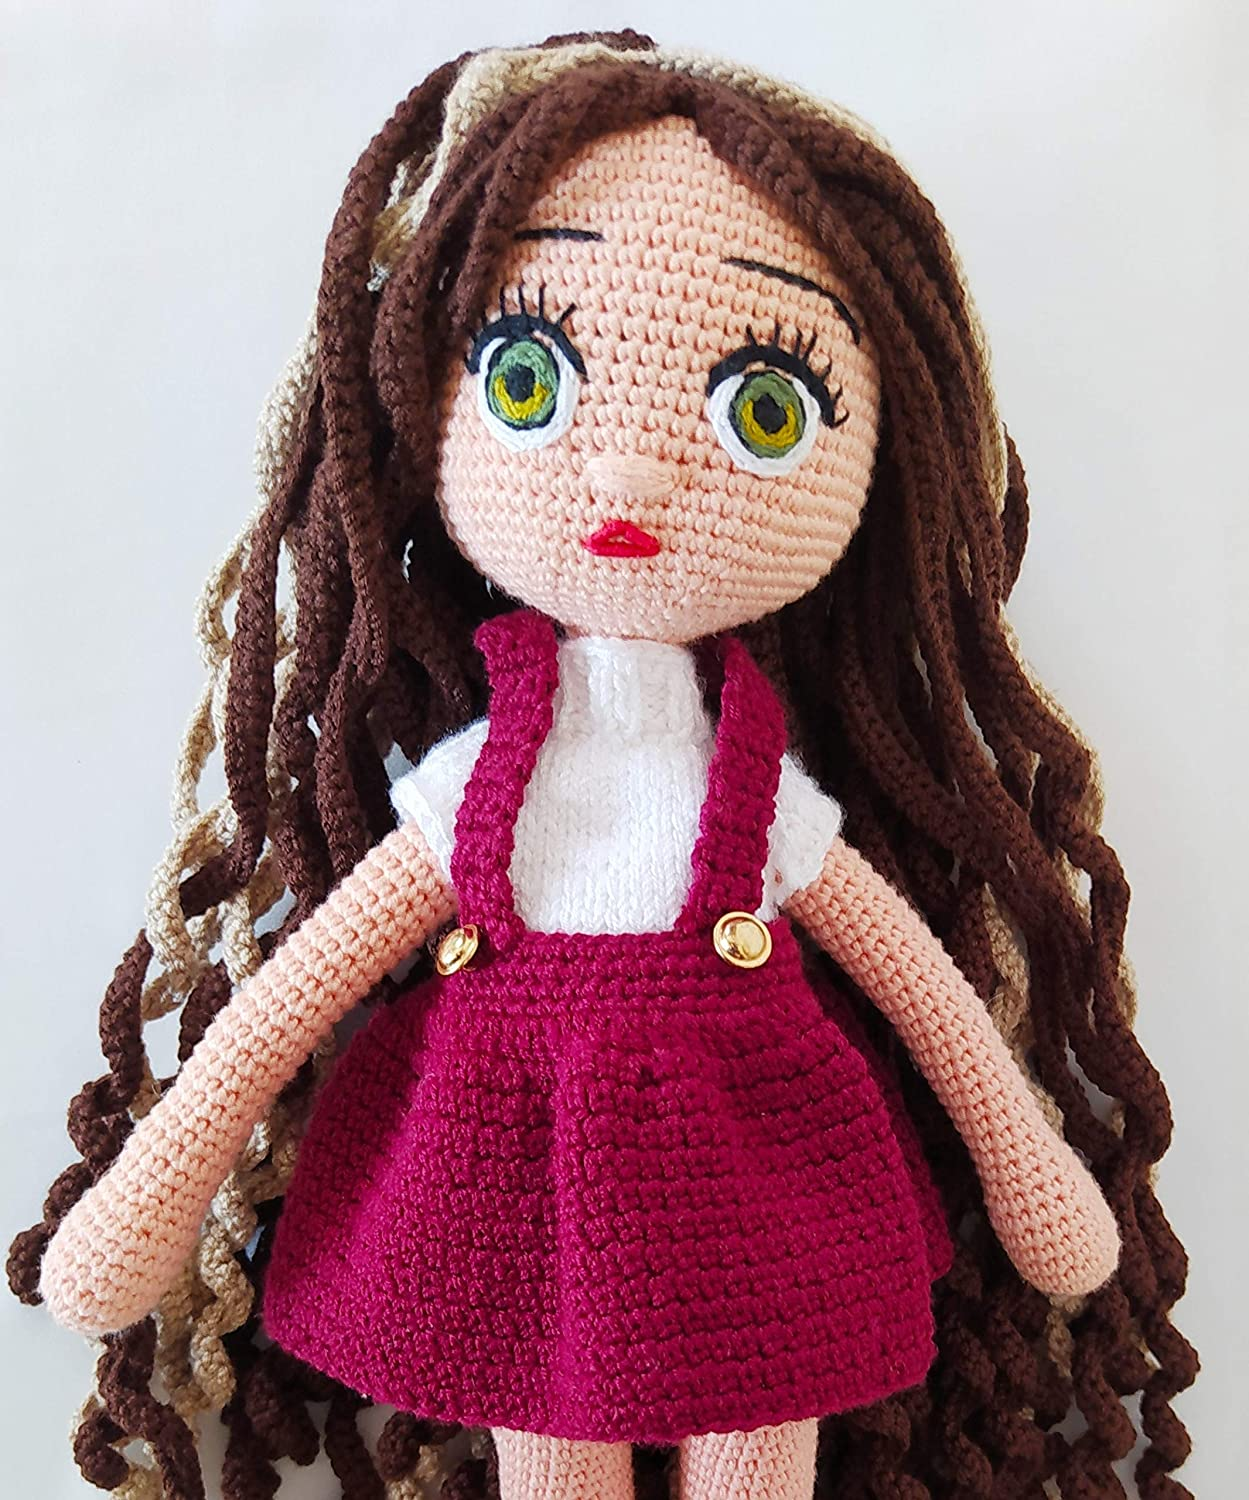 Greathappy Amigurumi - Crochet and Knitted Baby Toys – Handmade - Stuffed Toys - A Beautiful Gift